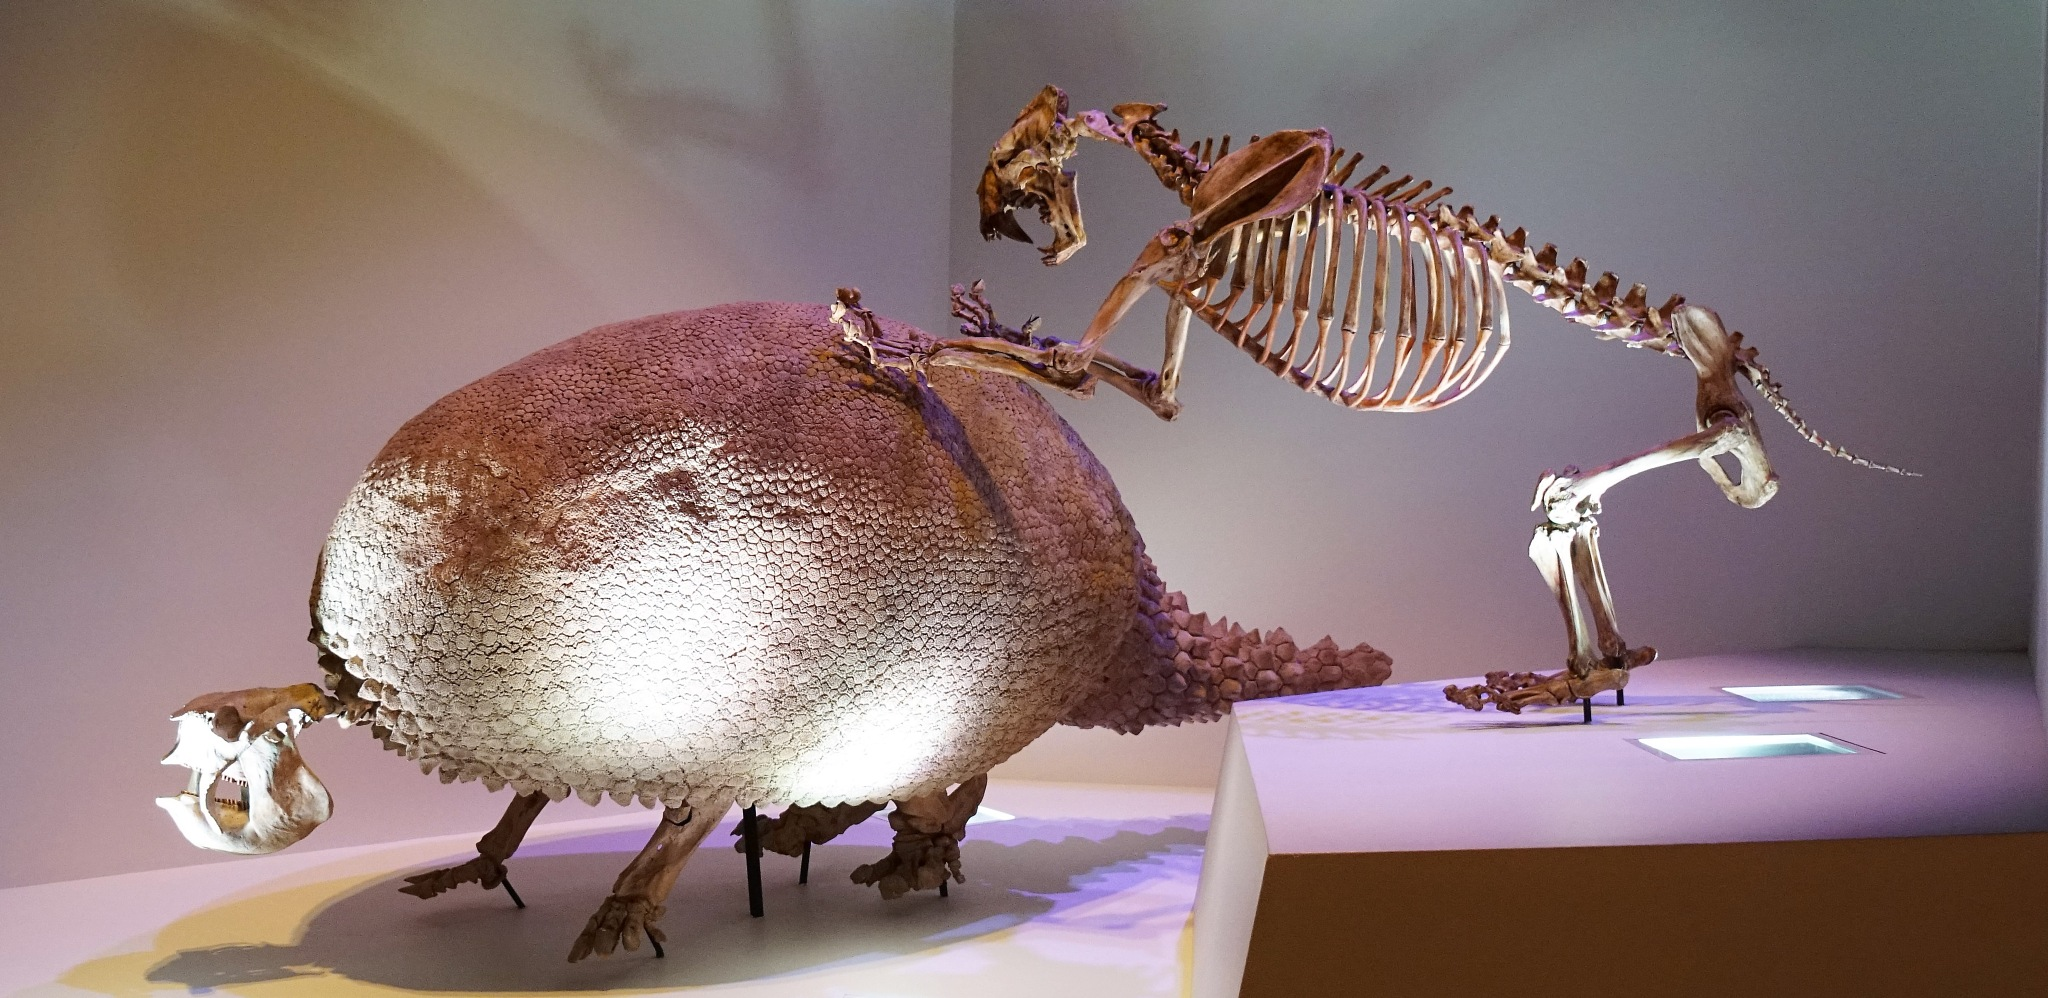 Giant Pre-historic Armadillo  by MichaelDorsey